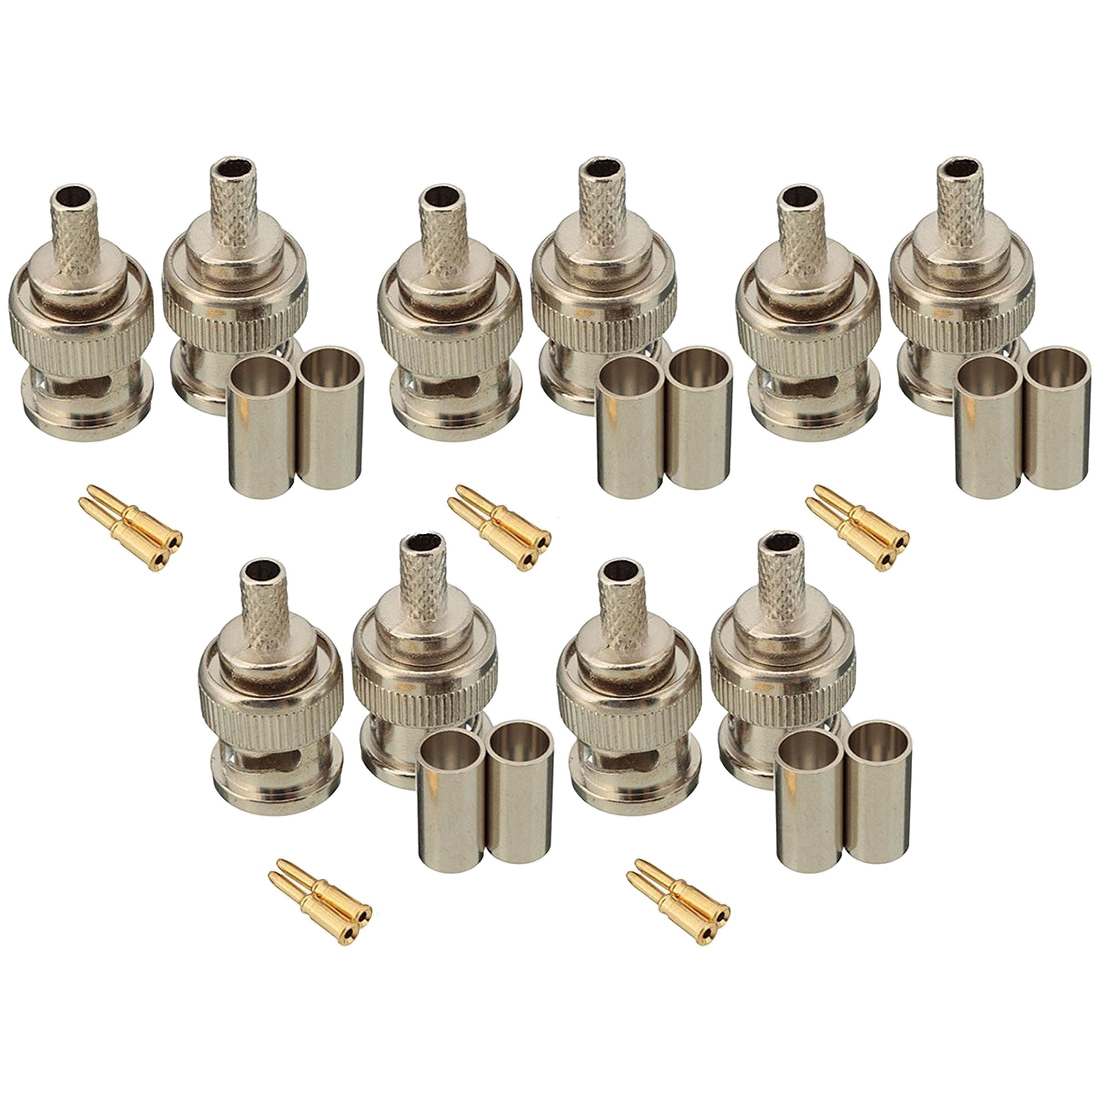 10 Sets 3-Piece BNC Male RG58 Plug Crimp Connectors